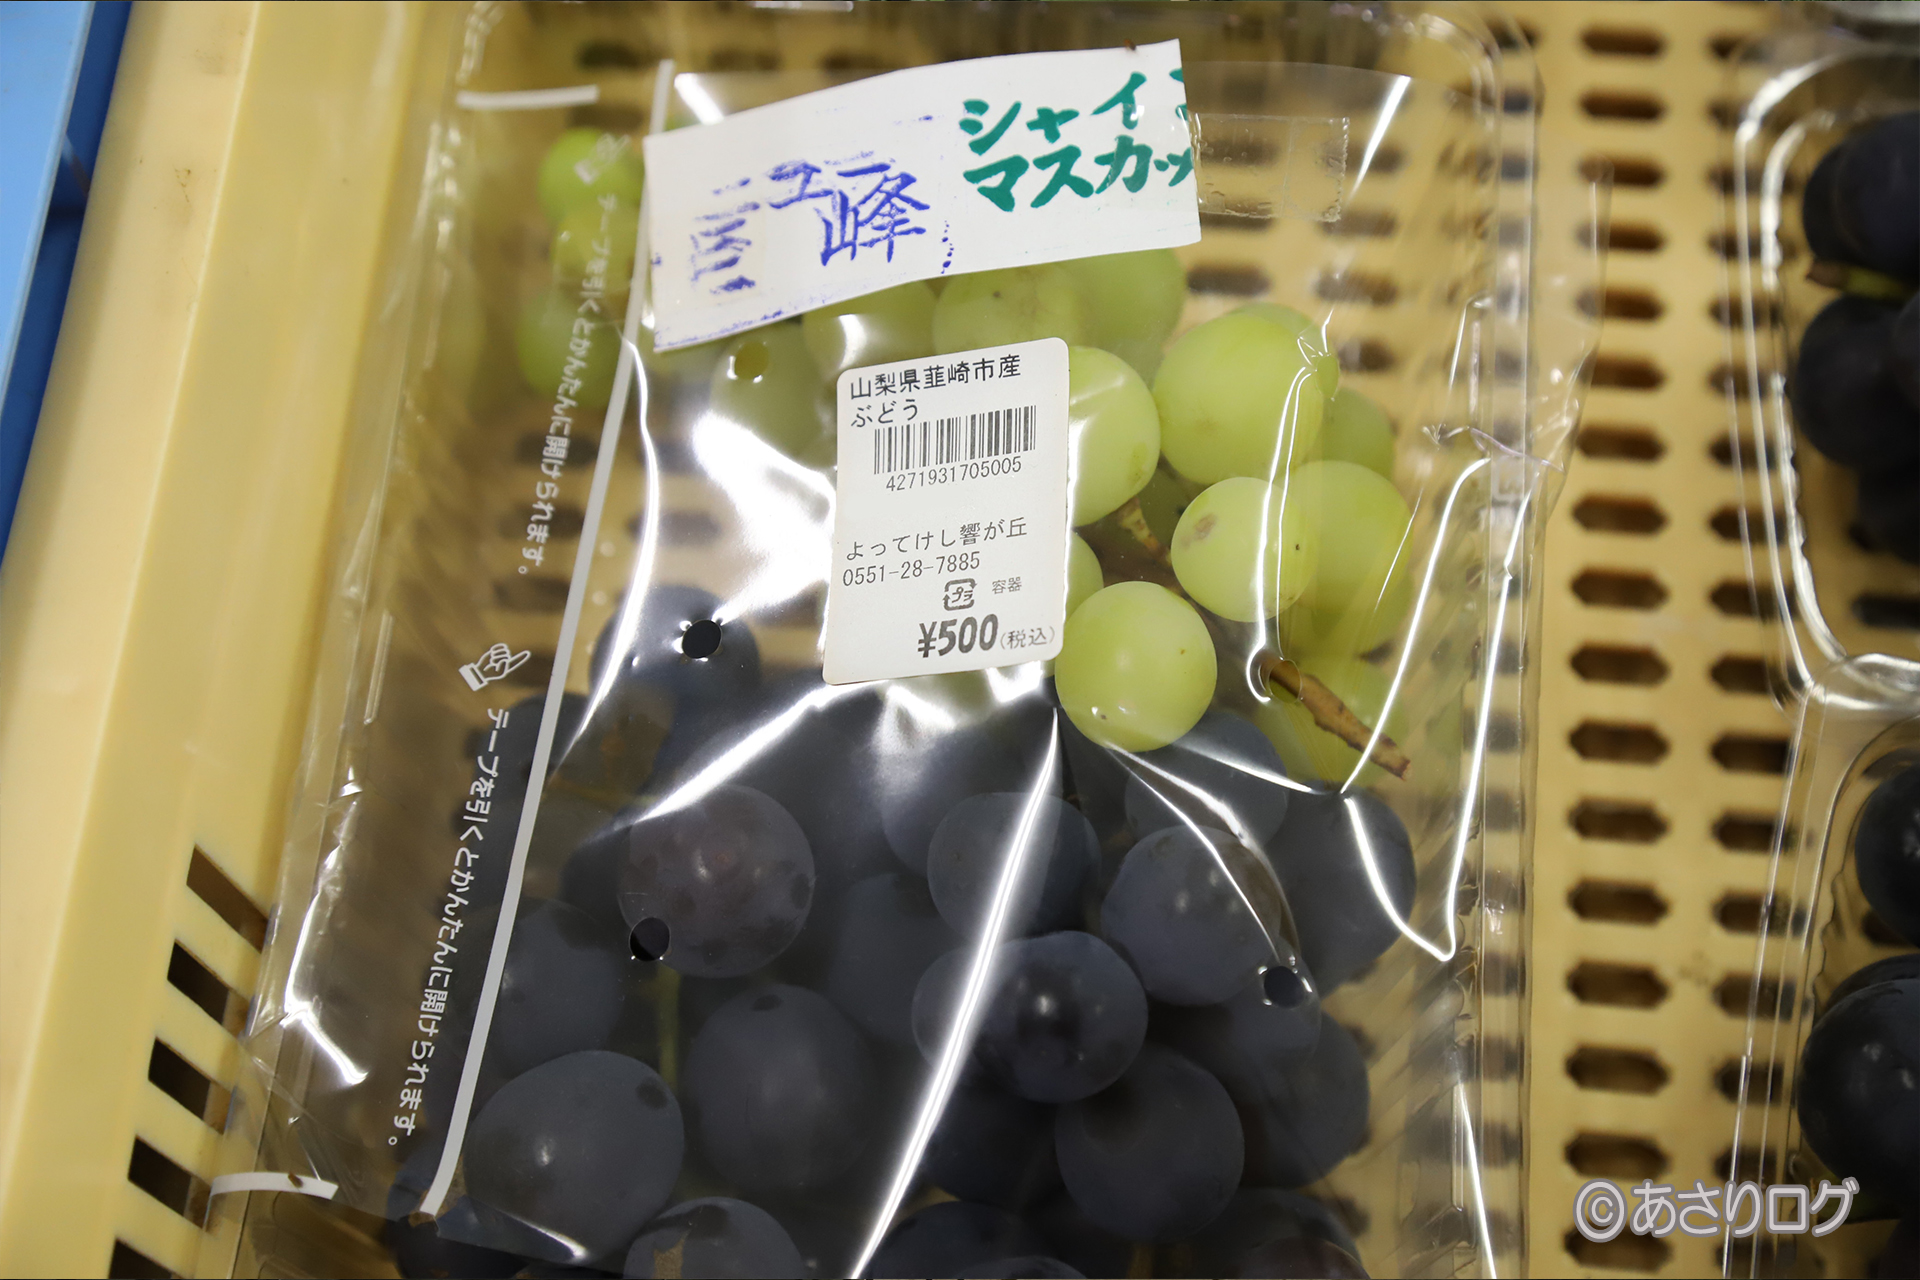 Various kinds of grapes